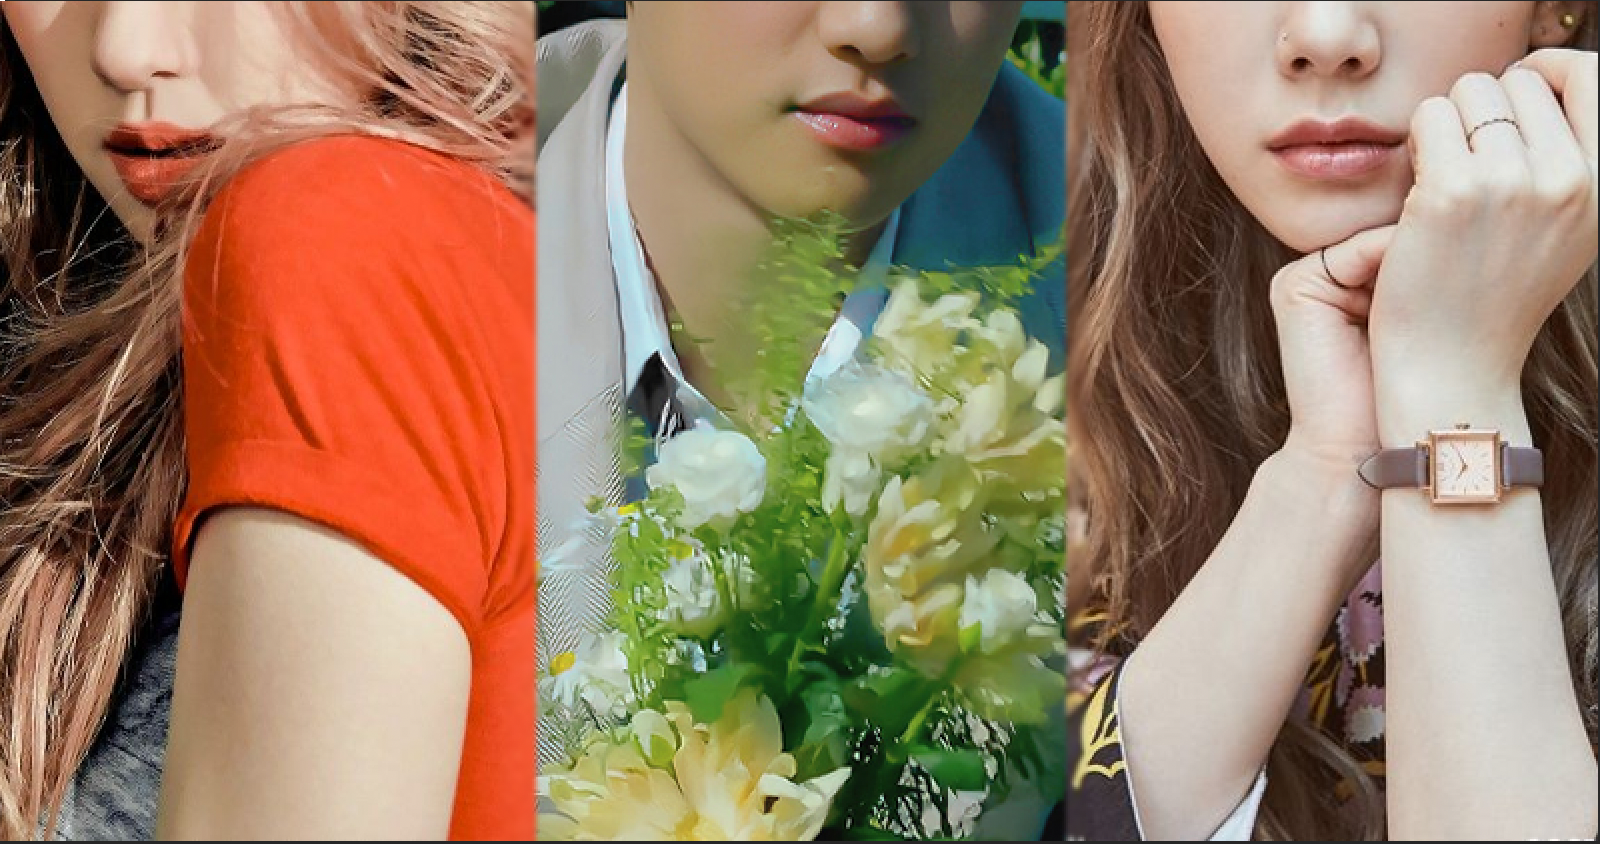 Top 8 K-Pop Songs to Add Perfect For Acoustic Lovers